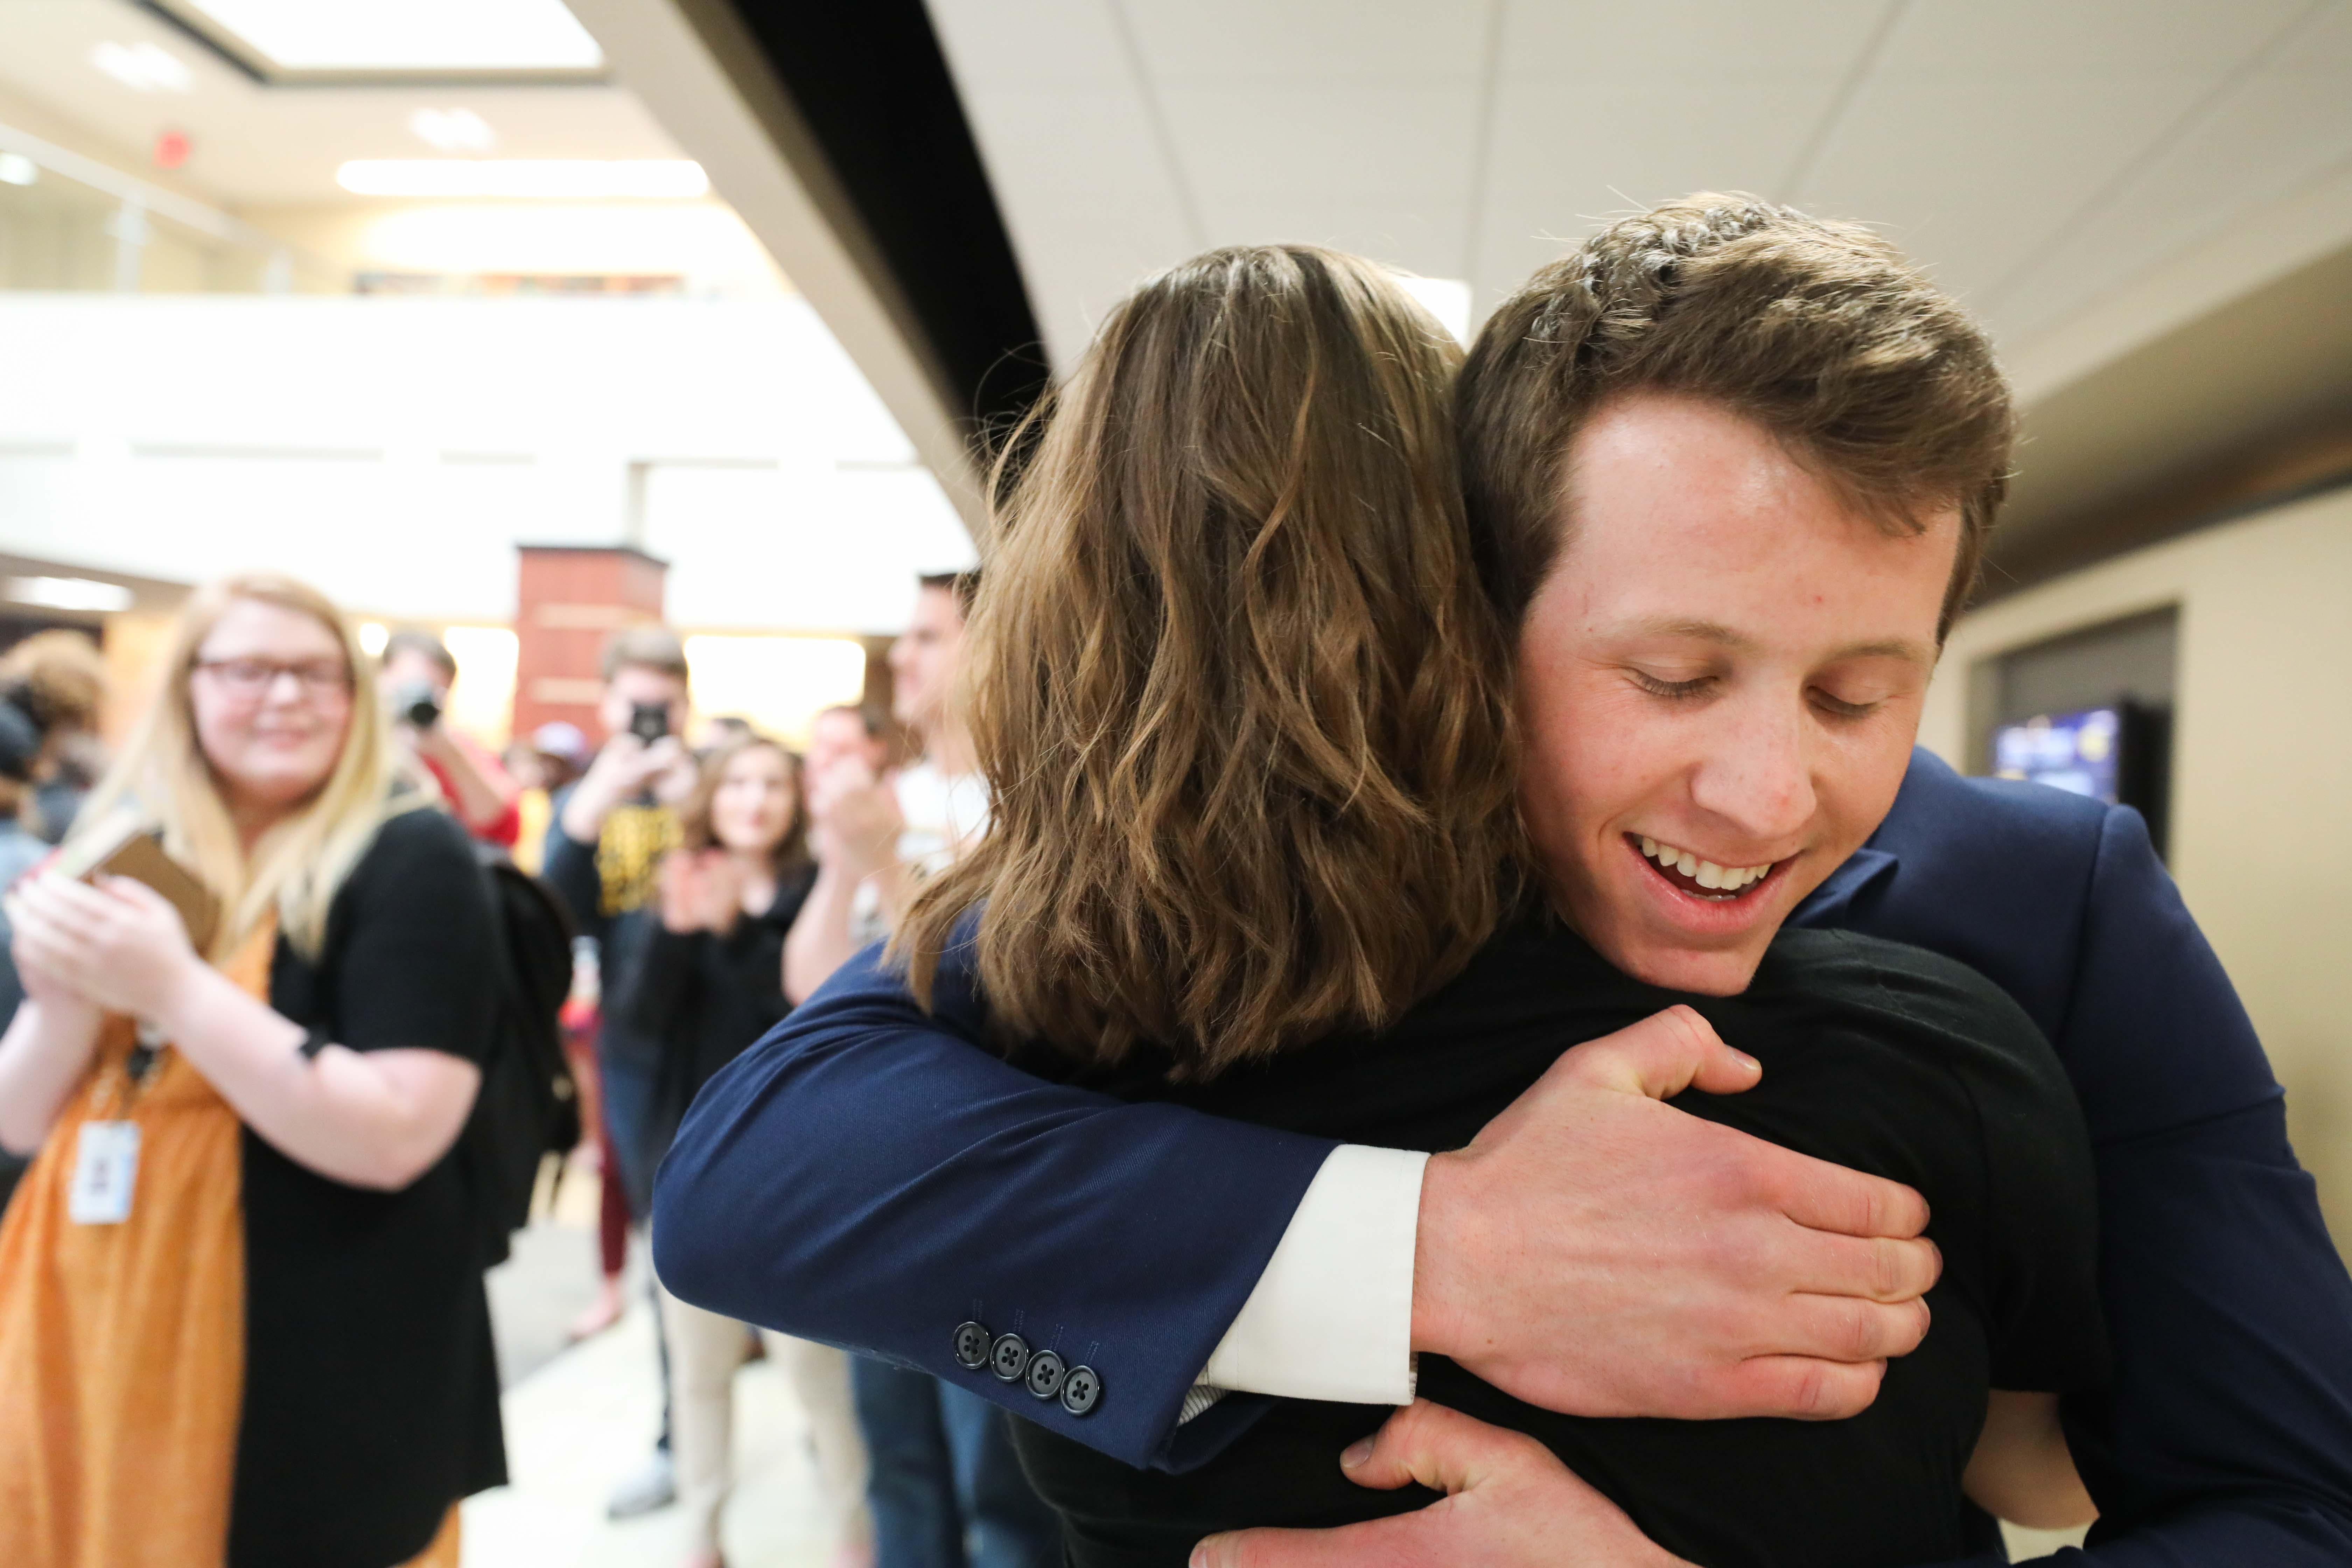 Vice President-elect Breck Towner hugs running mate Paige Hungate after the announcement of their victory in the RSC.